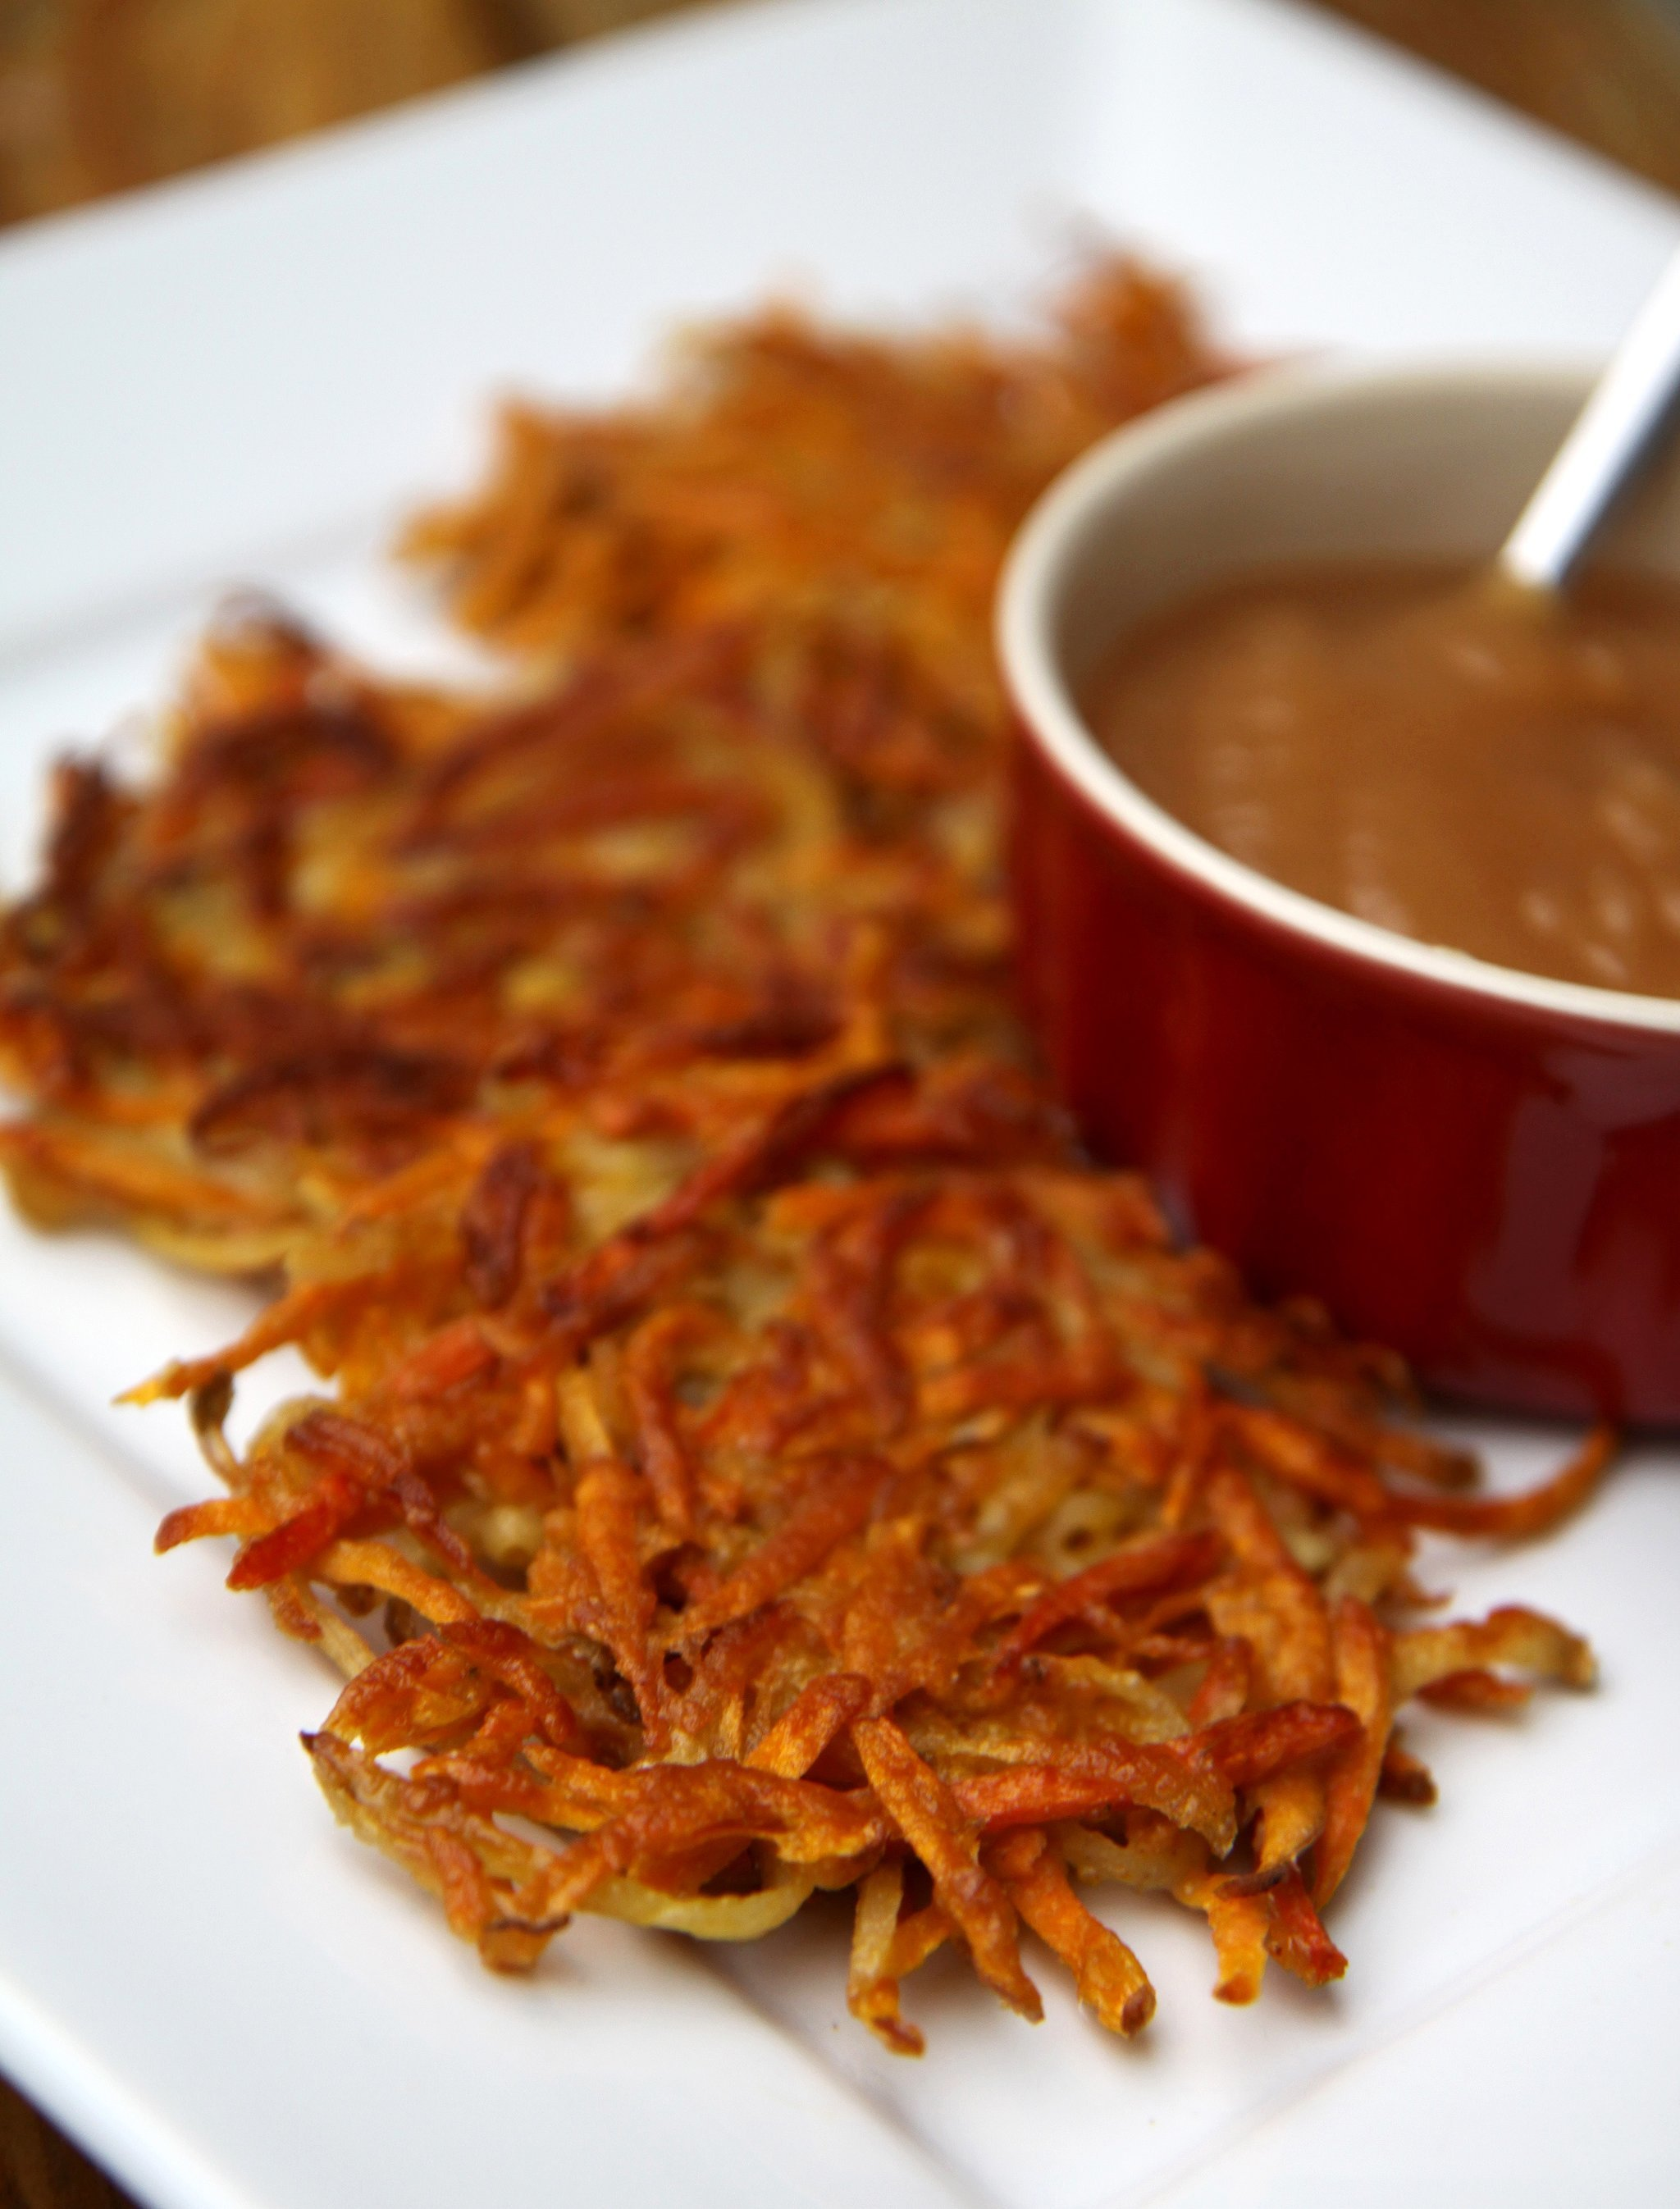 ... mixes grated carrots with sweet potatoes for a warm and sweet twist